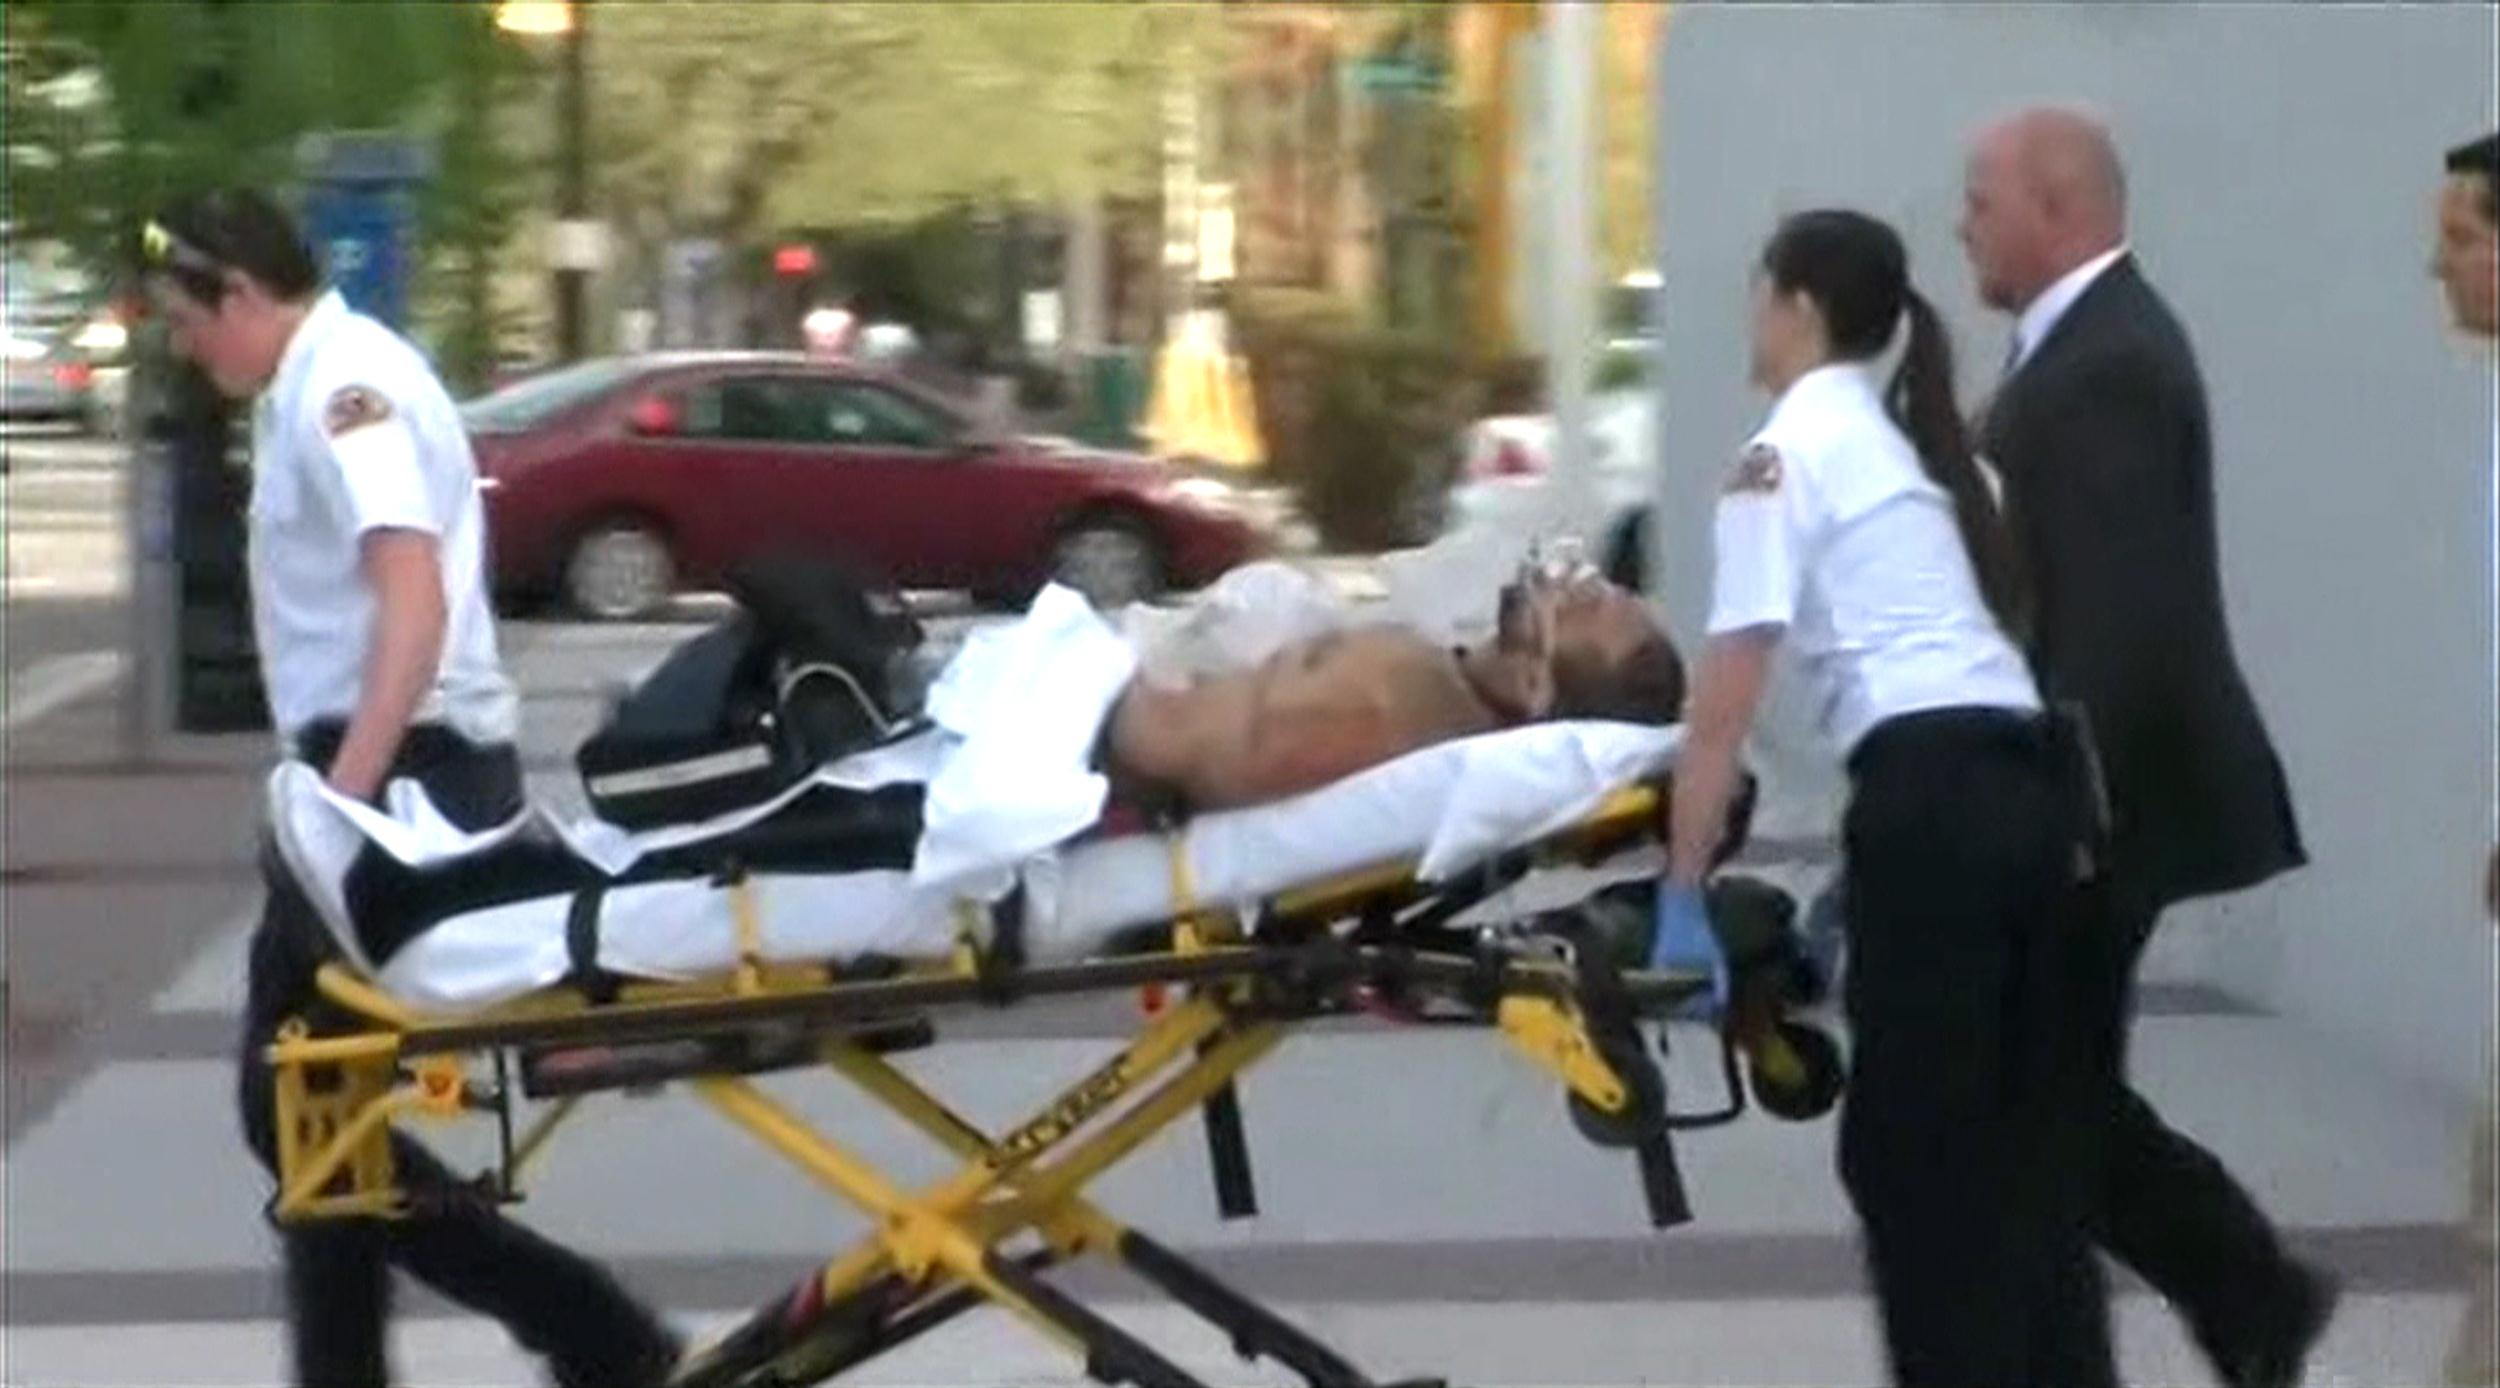 Image: An injured man is wheeled to an ambulance following a shooting at the new Fereral Courthouse in Salt Lake City, Utah.